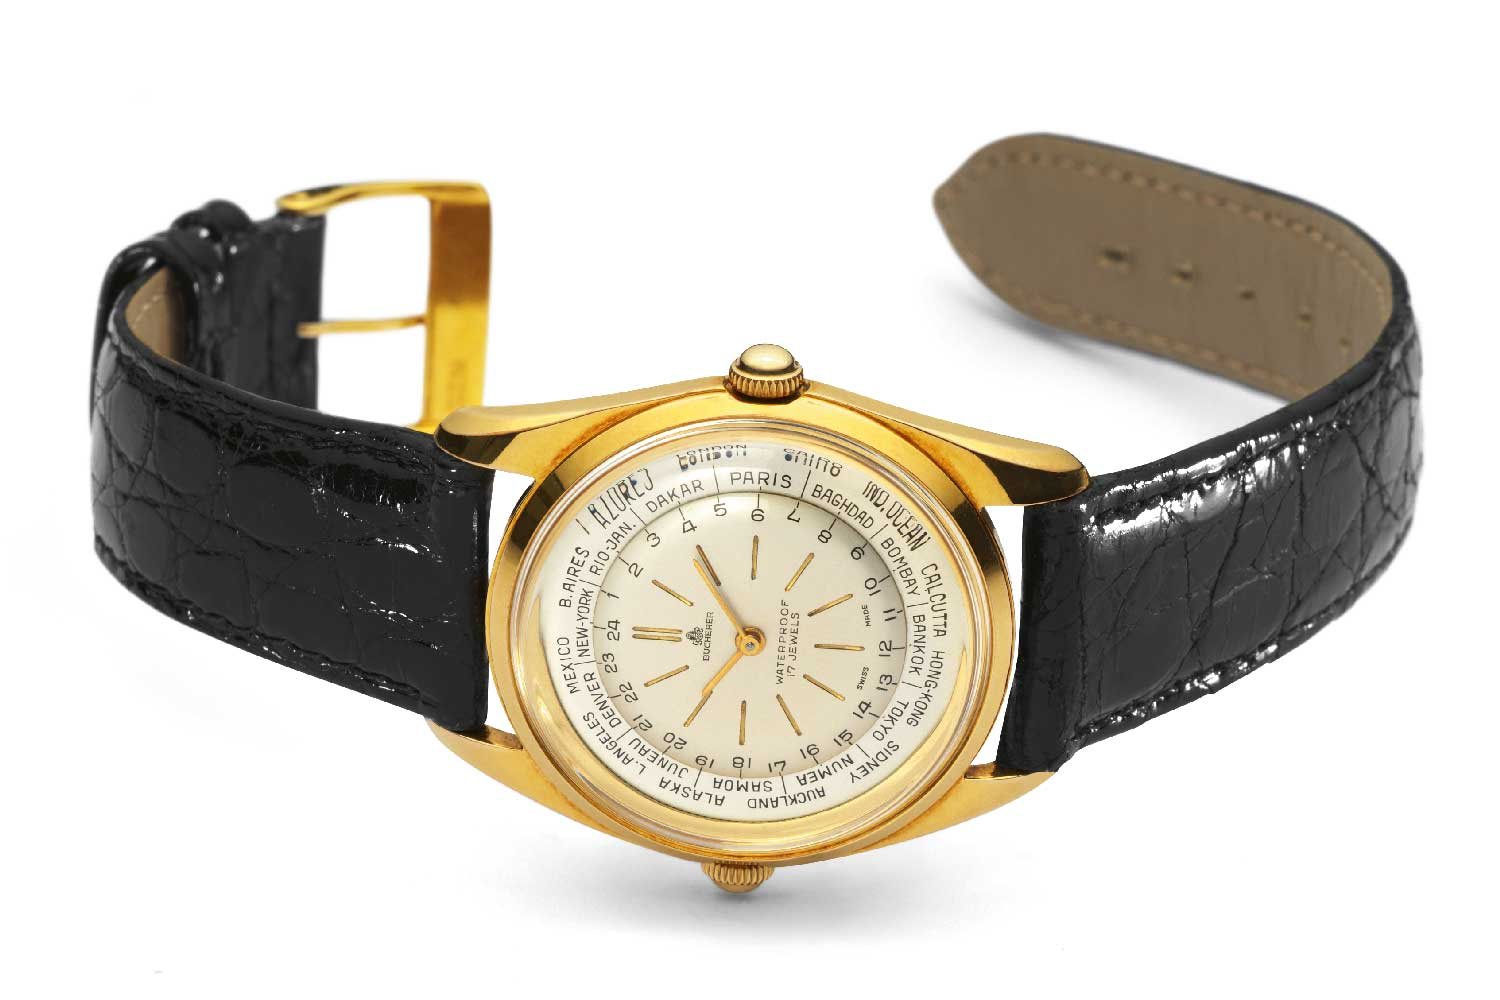 In the 1950s, the company produced its first world timer in gold, with two crowns with the alternate one at 9 o'clock that allowed for adjustment of the internal city ring.